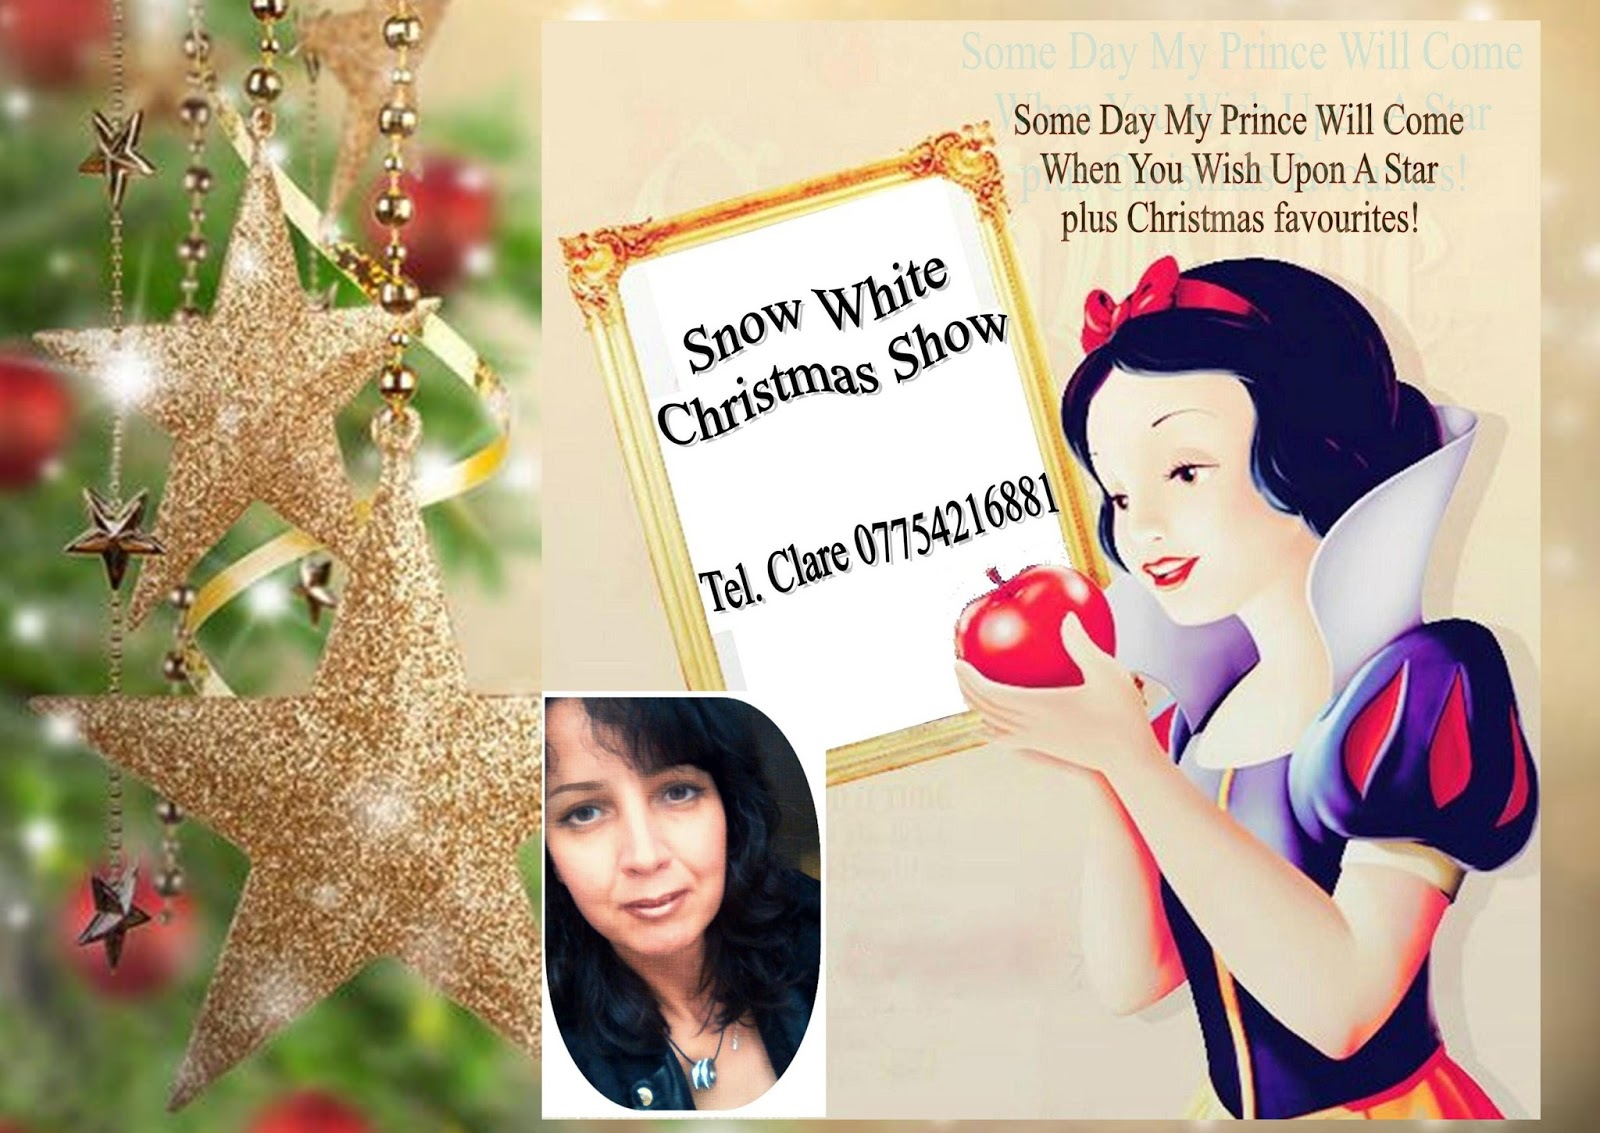 i am getting into the fun panto theme this year for the snow white christmas show a musical tribute to some of the best songs of disney combined with - White Christmas Snow Song